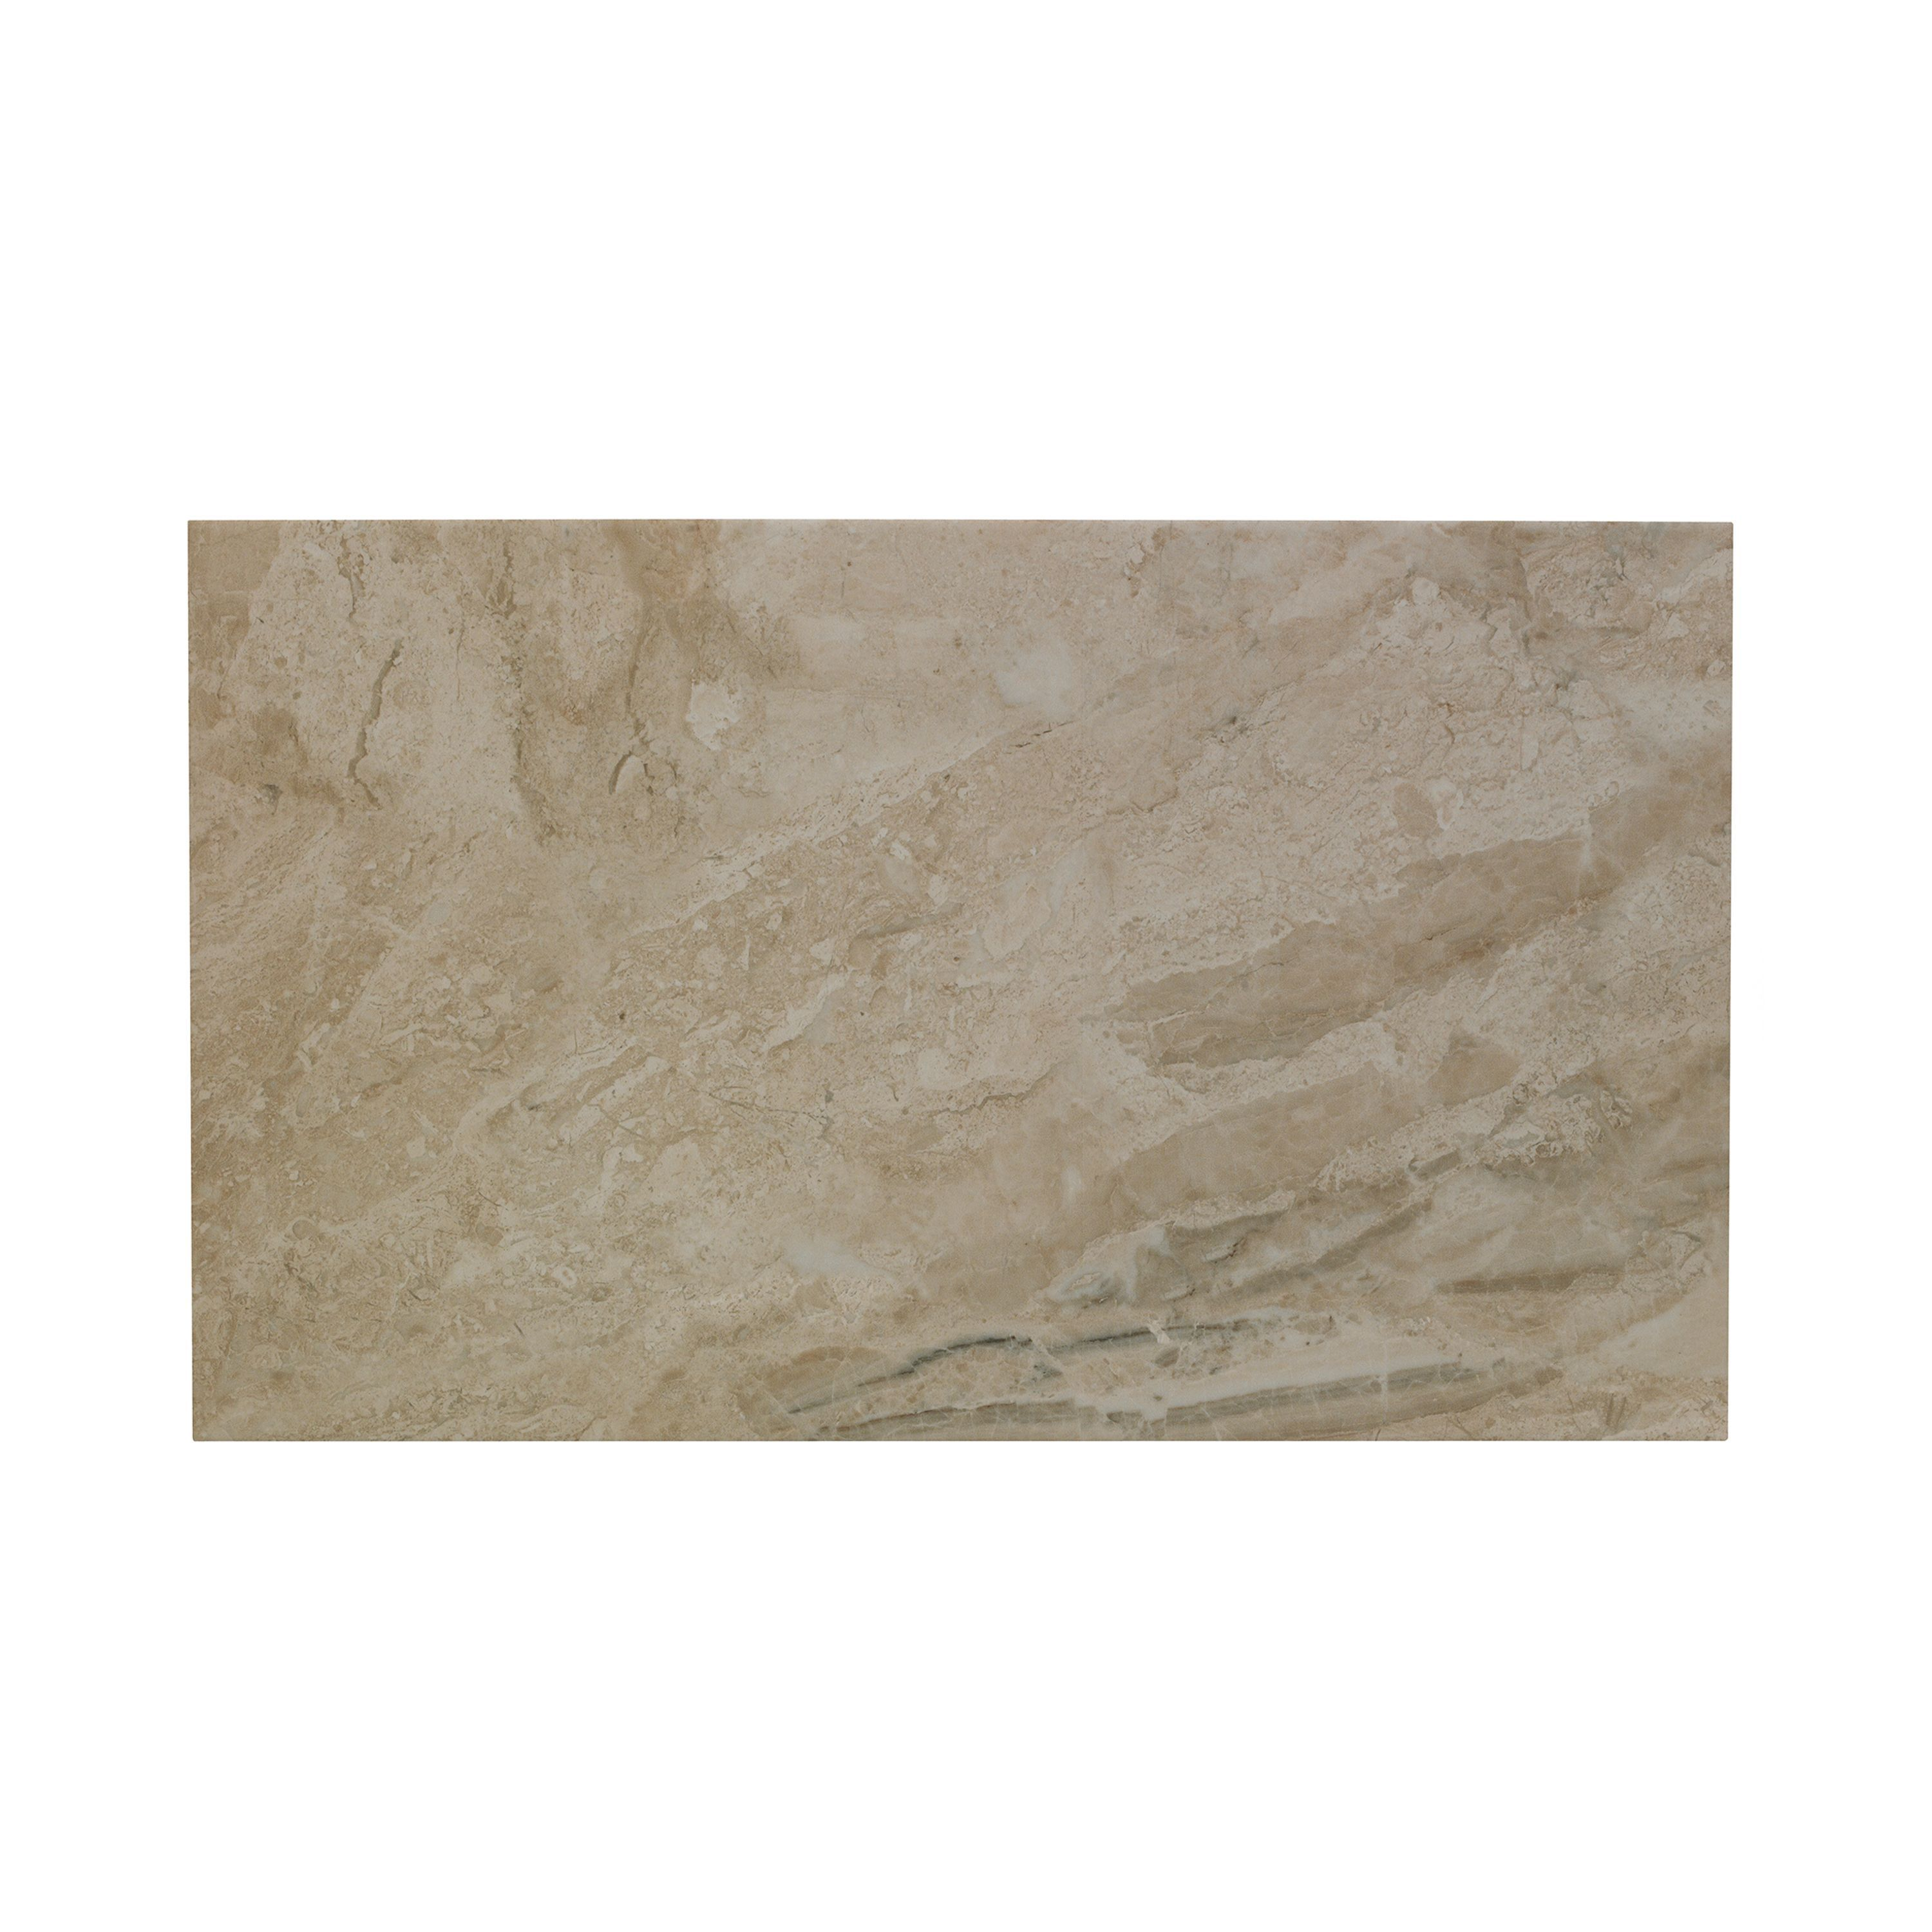 Bq Kitchen Flooring Haver Sand Travertine Effect Ceramic Wall Floor Tile Pack Of 6